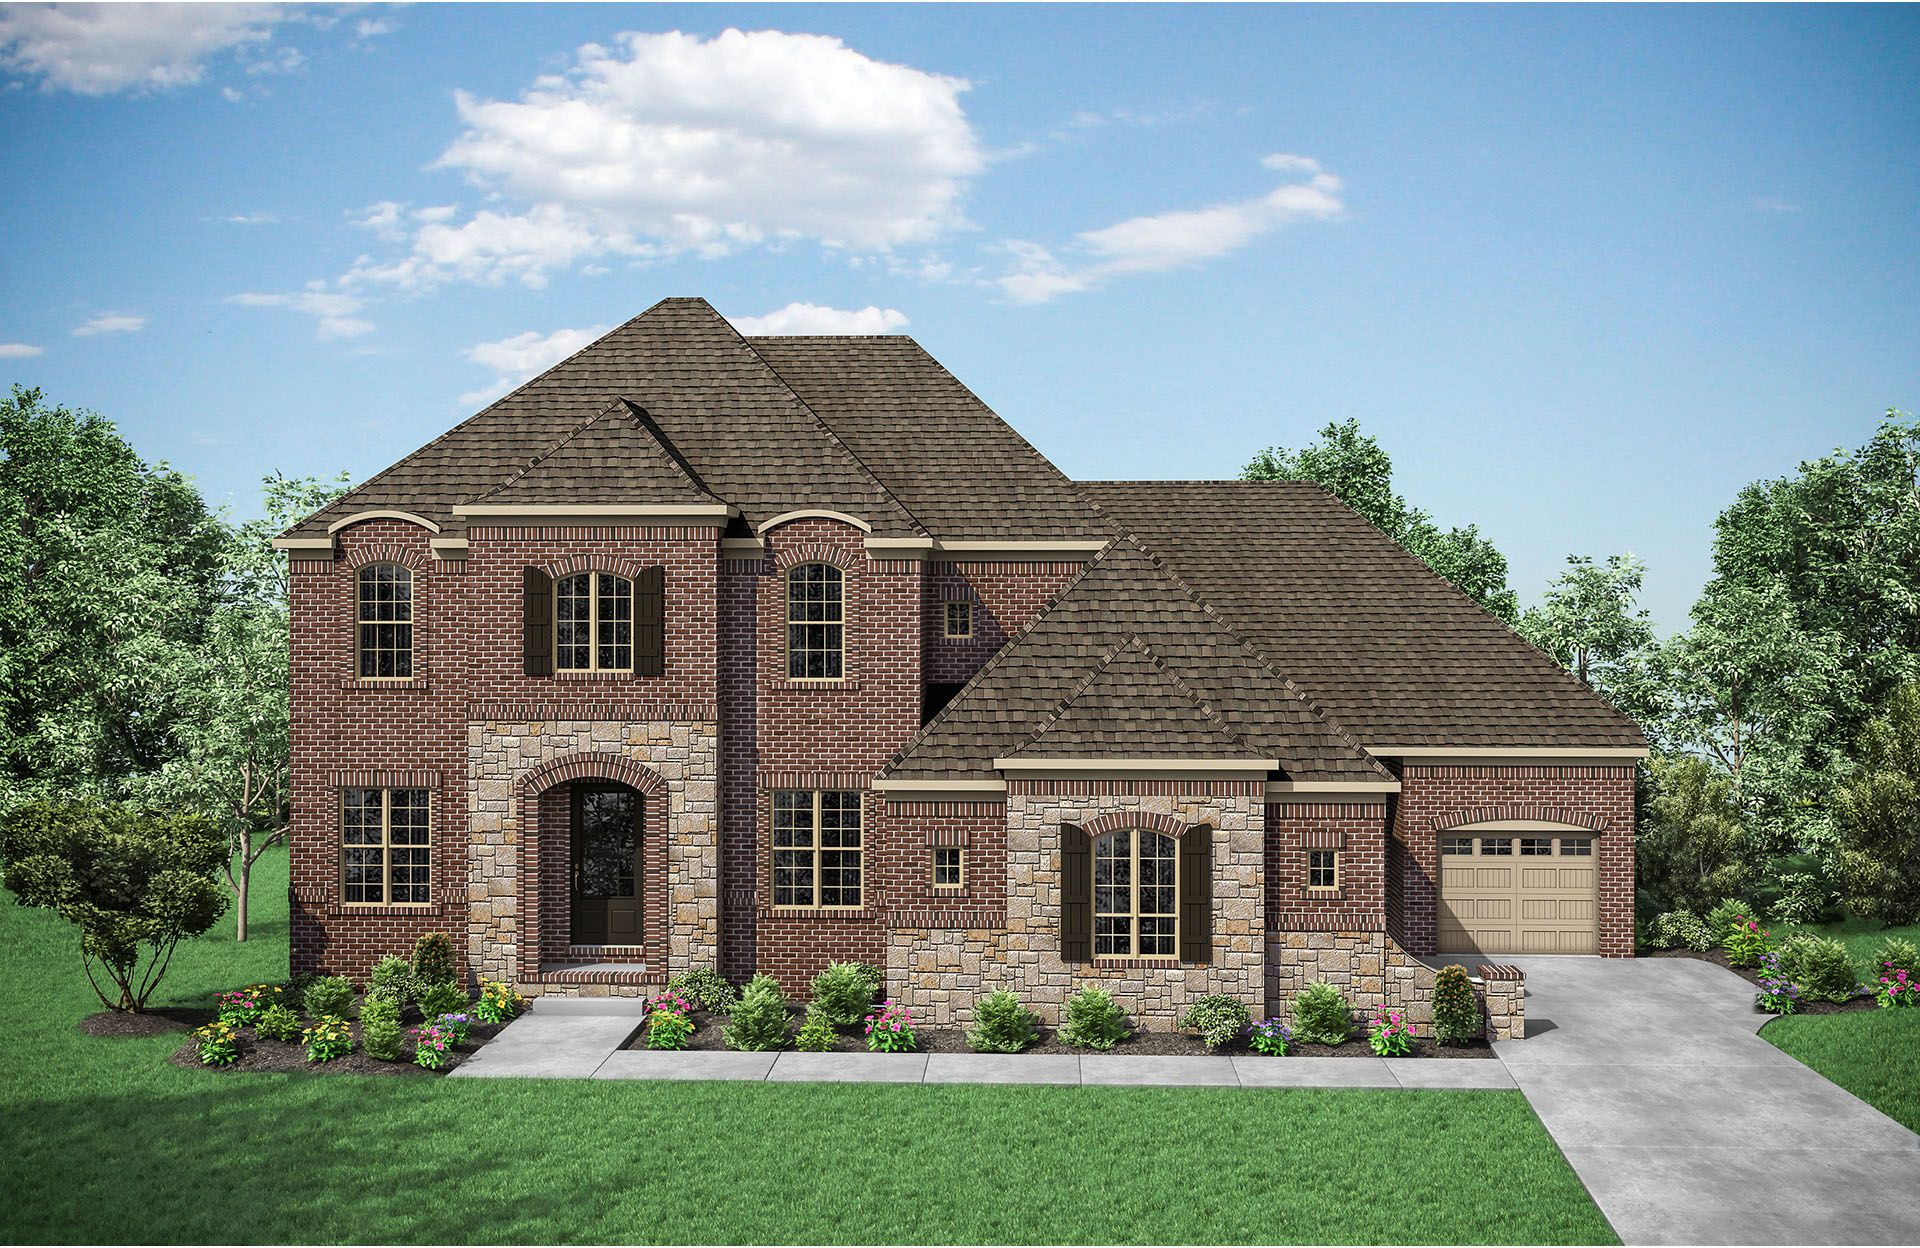 Single Family for Active at Kings' Chapel - Belterra 4544 Majestic Meadow Drive Arrington, Tennessee 37014 United States